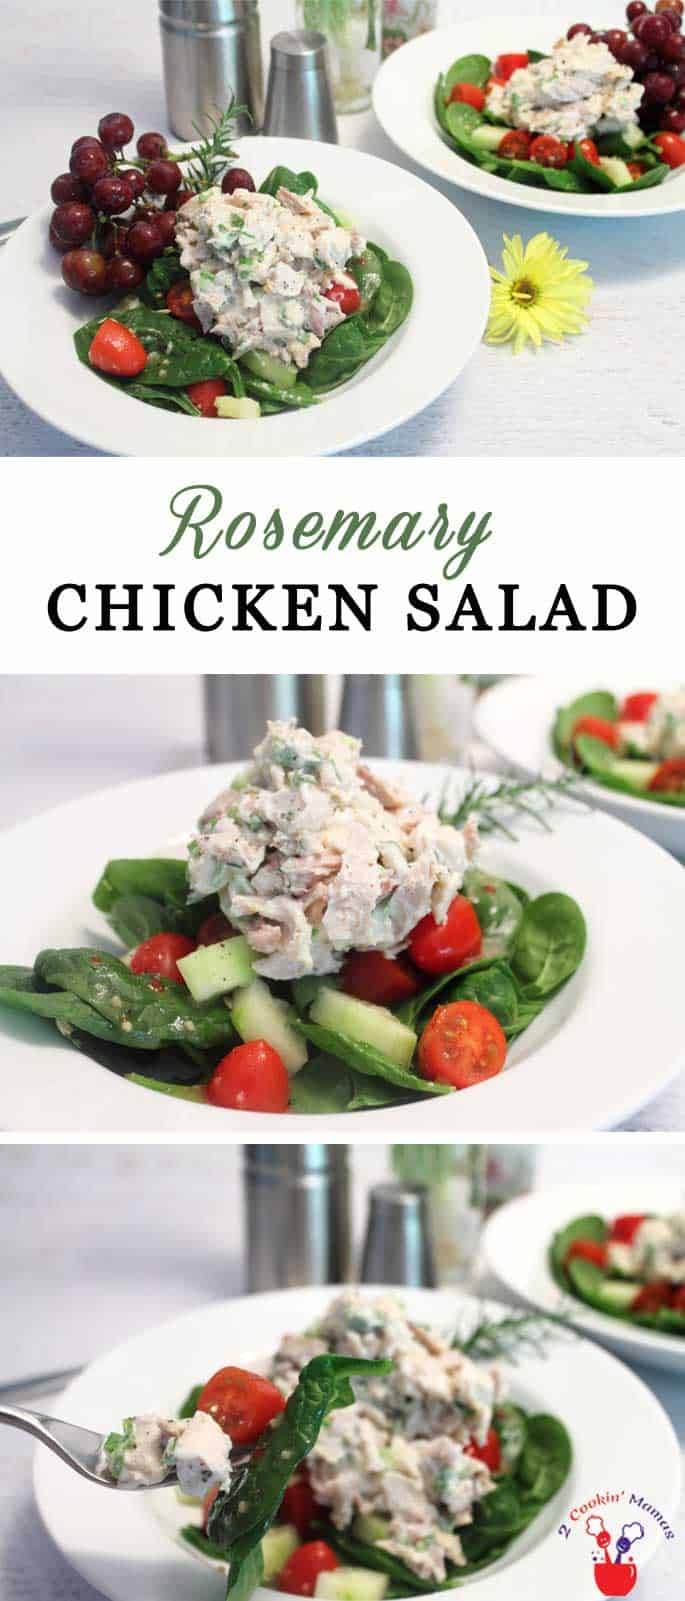 Rosemary Chicken Salad   2 Cookin Mamas Our healthy Rosemary Chicken Salad is easy to make and, when served over our spinach salad, is packed with lean protein, fiber and important antioxidants. #recipe